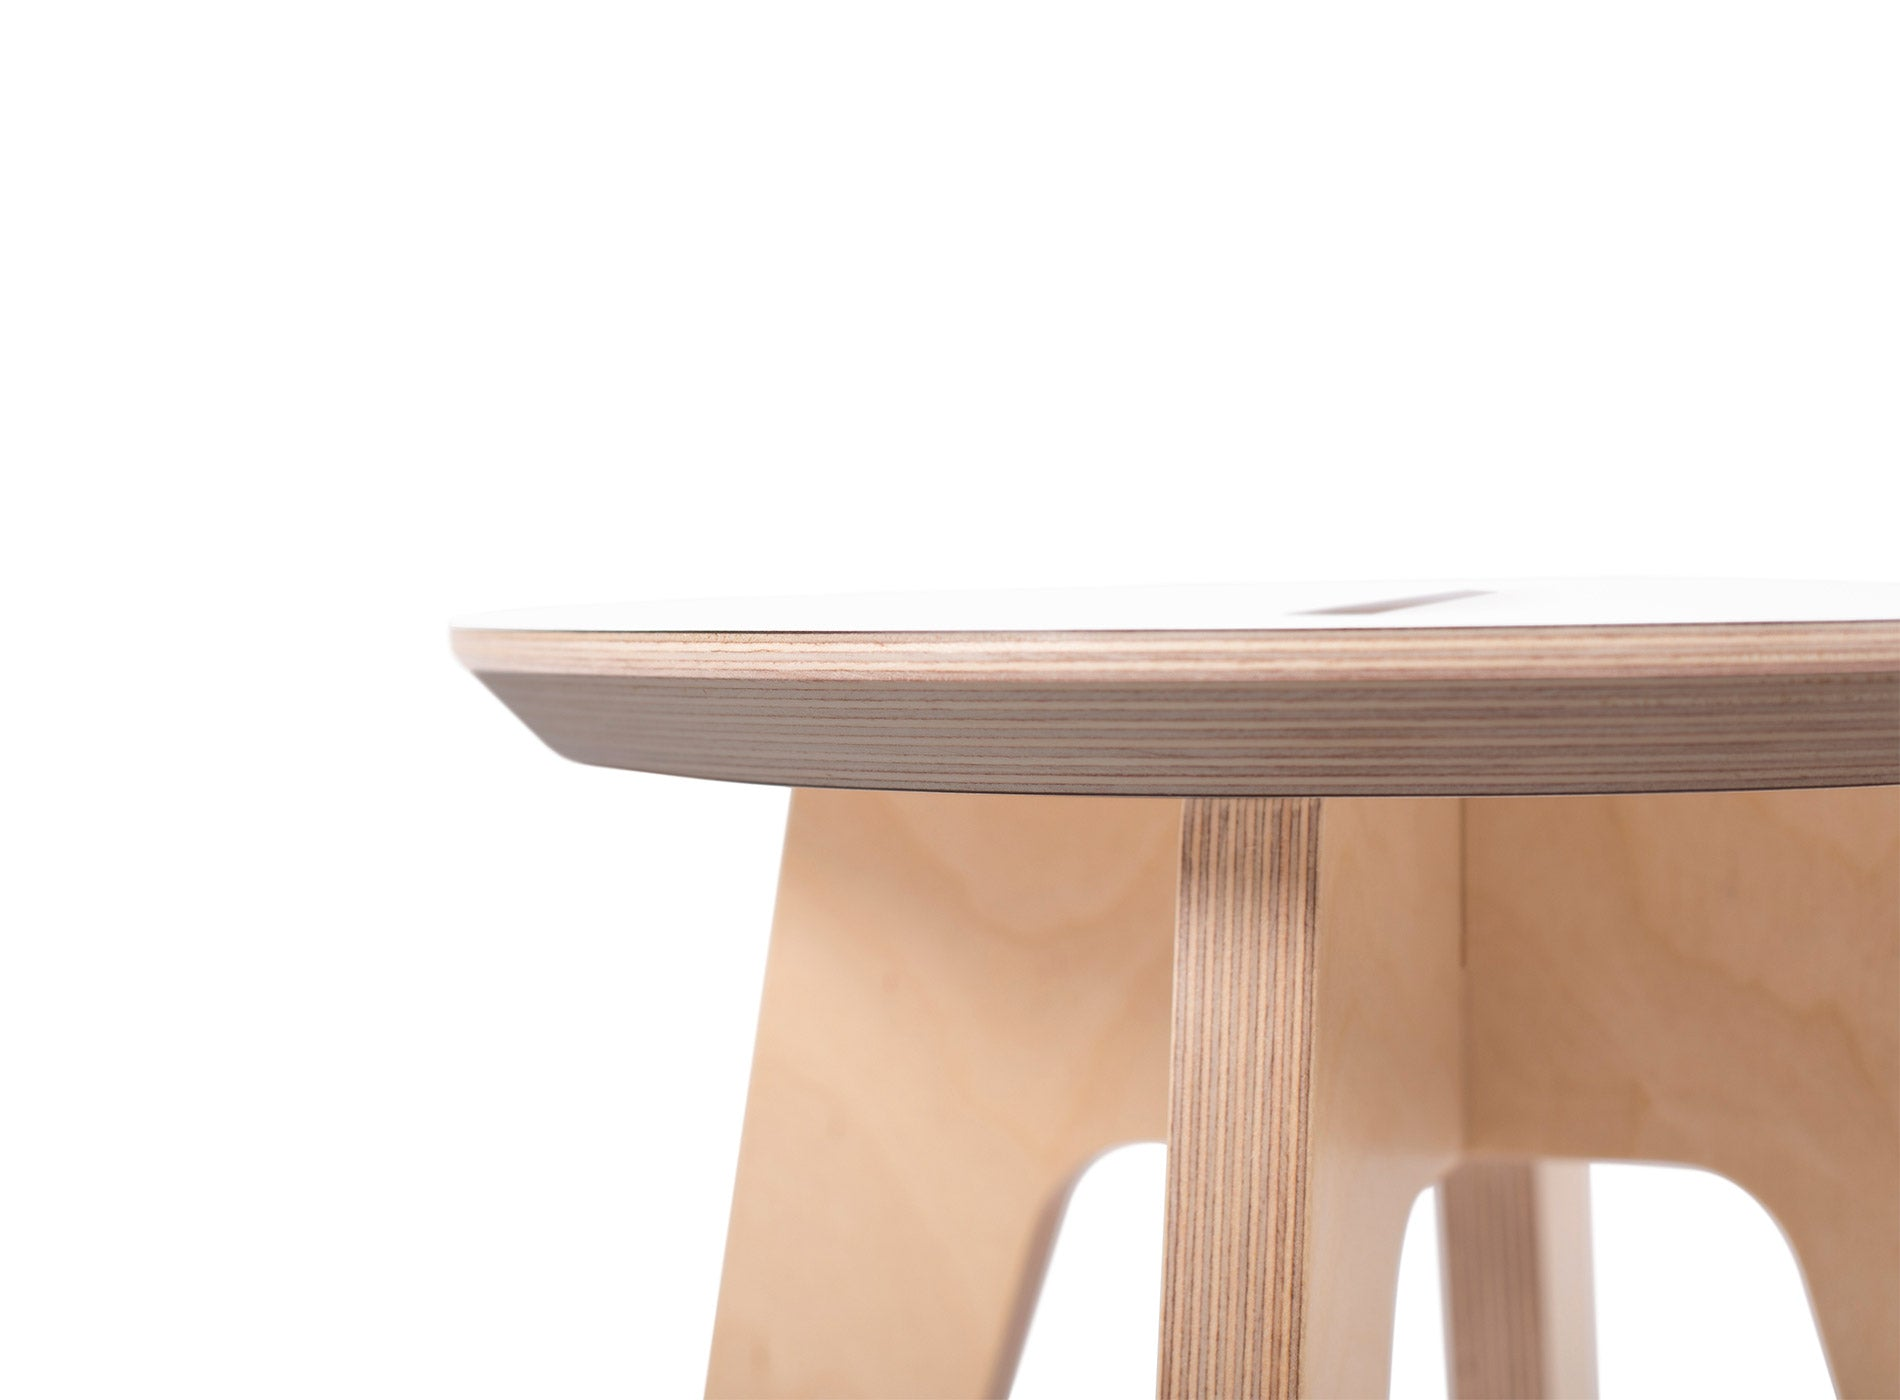 Caramba Humble Stool, Edge Detail